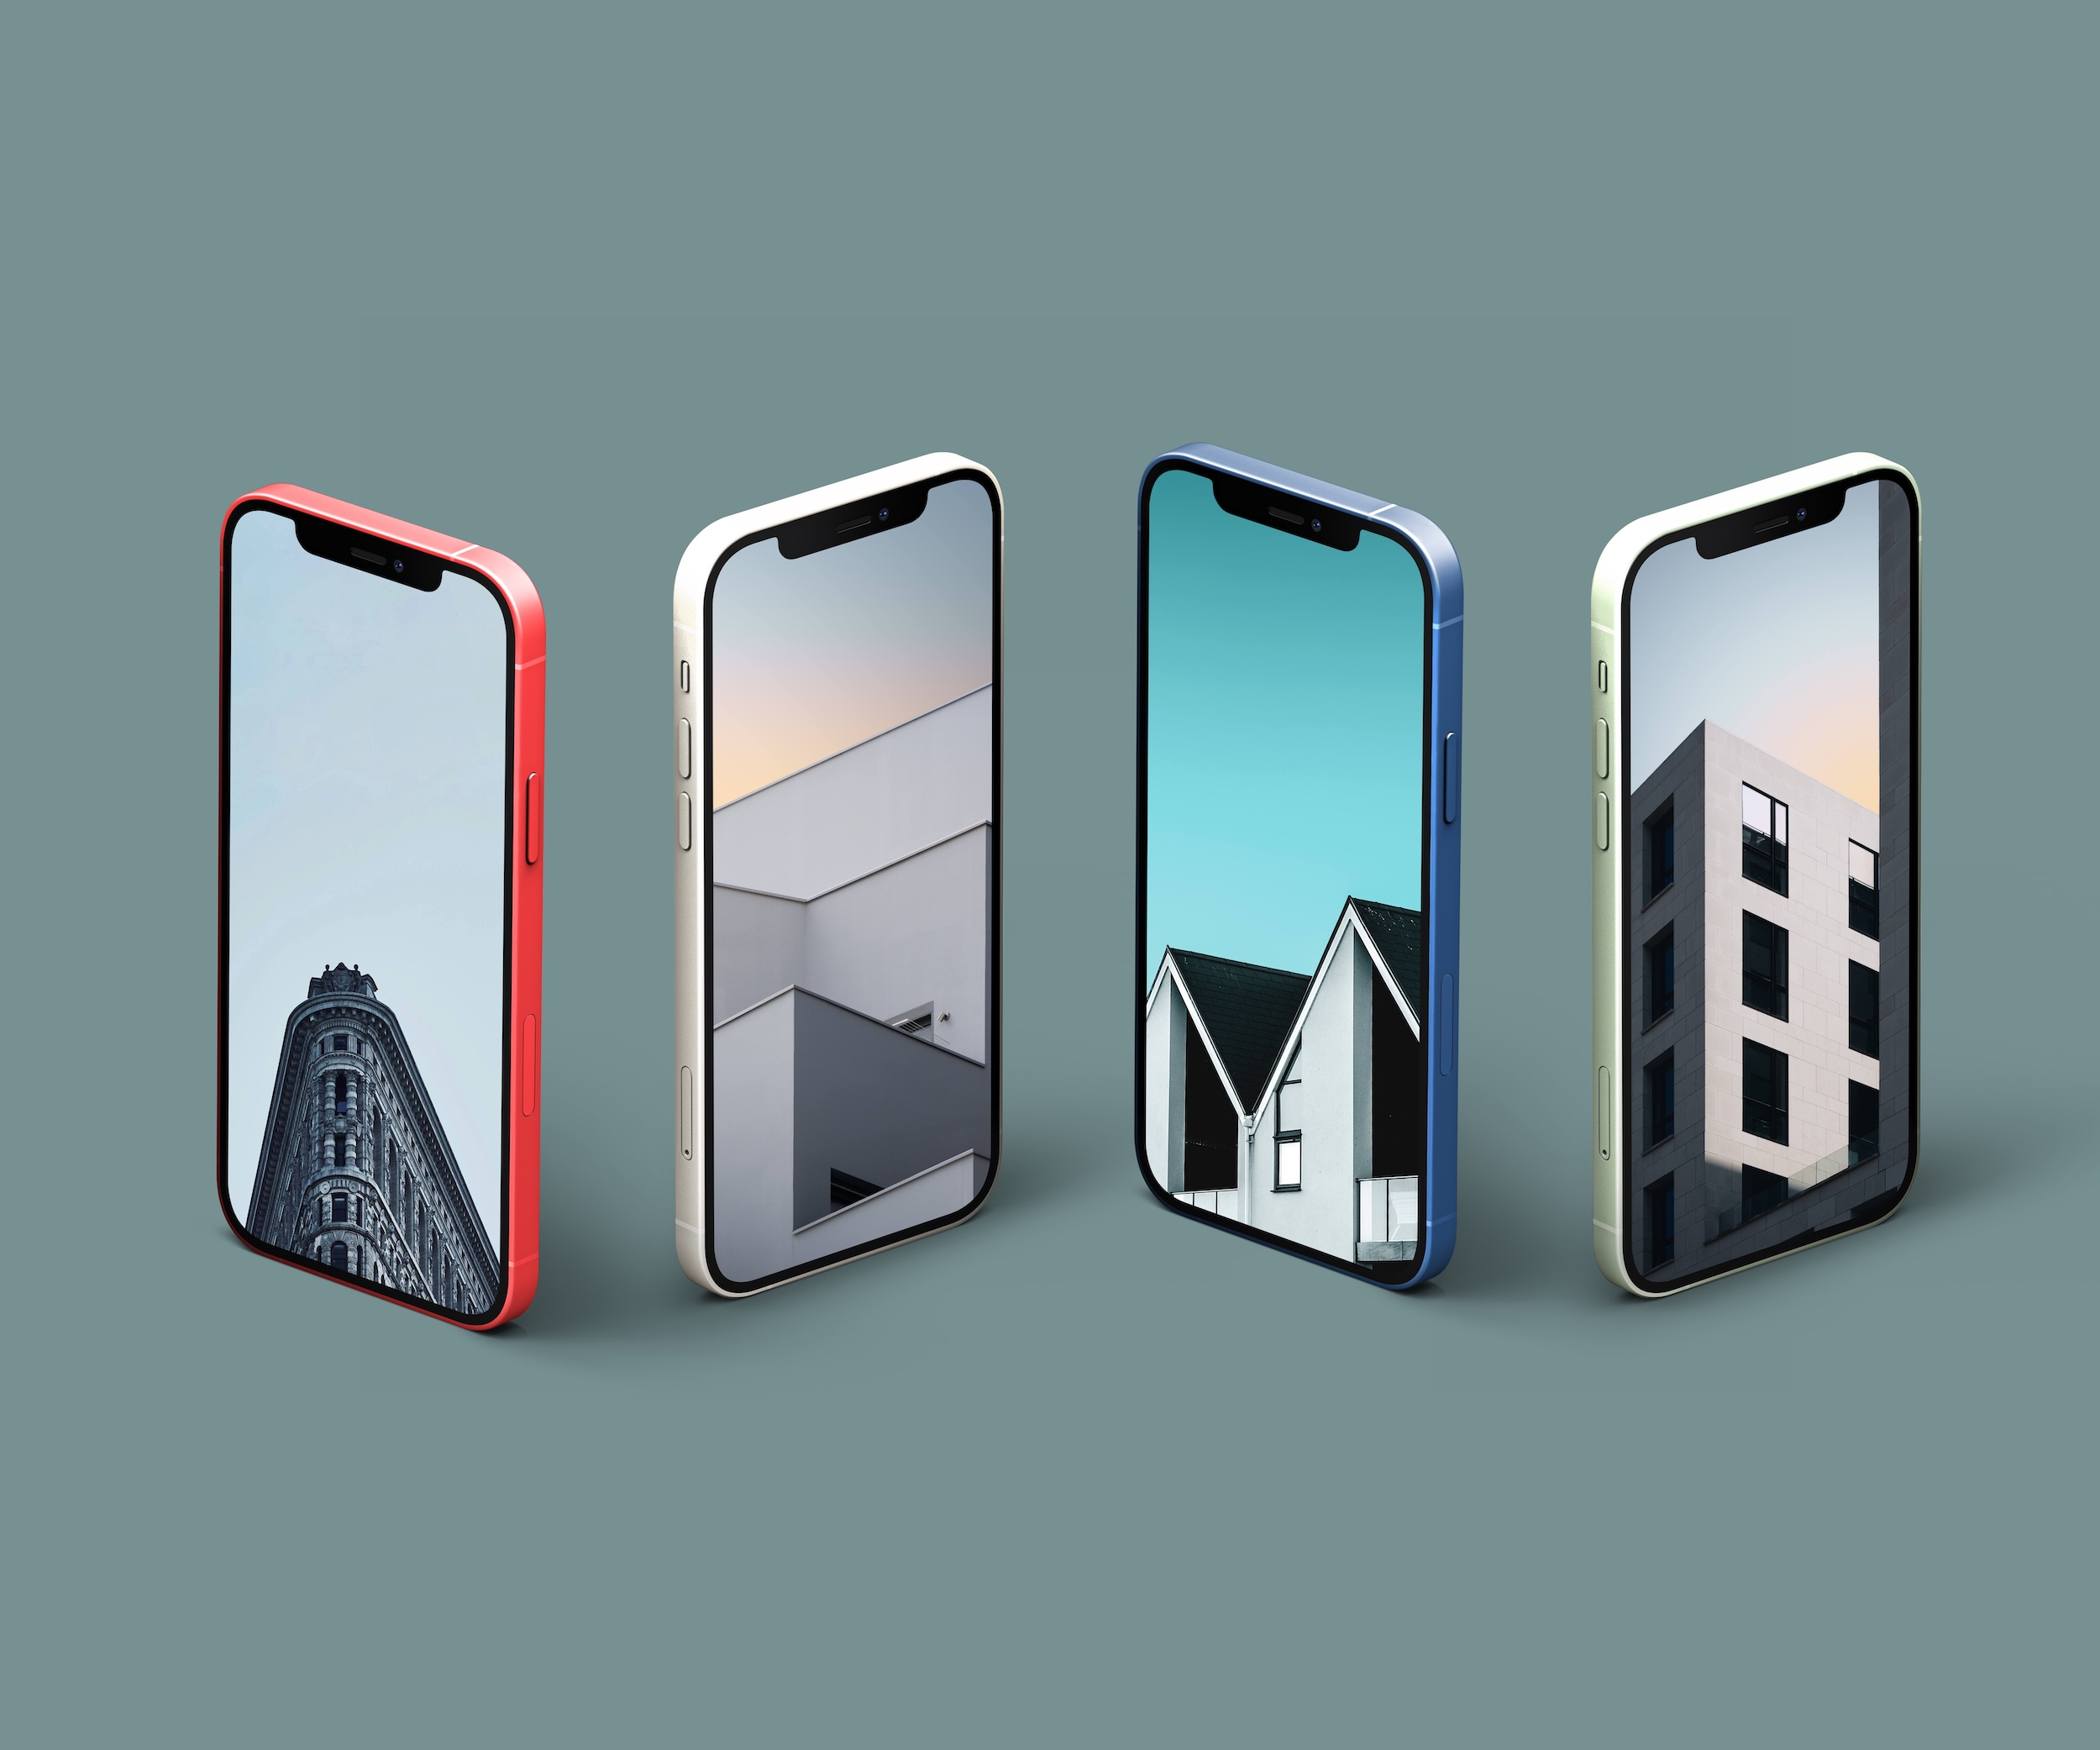 Architecture wallpapers of all shapes and sizes for iPhone